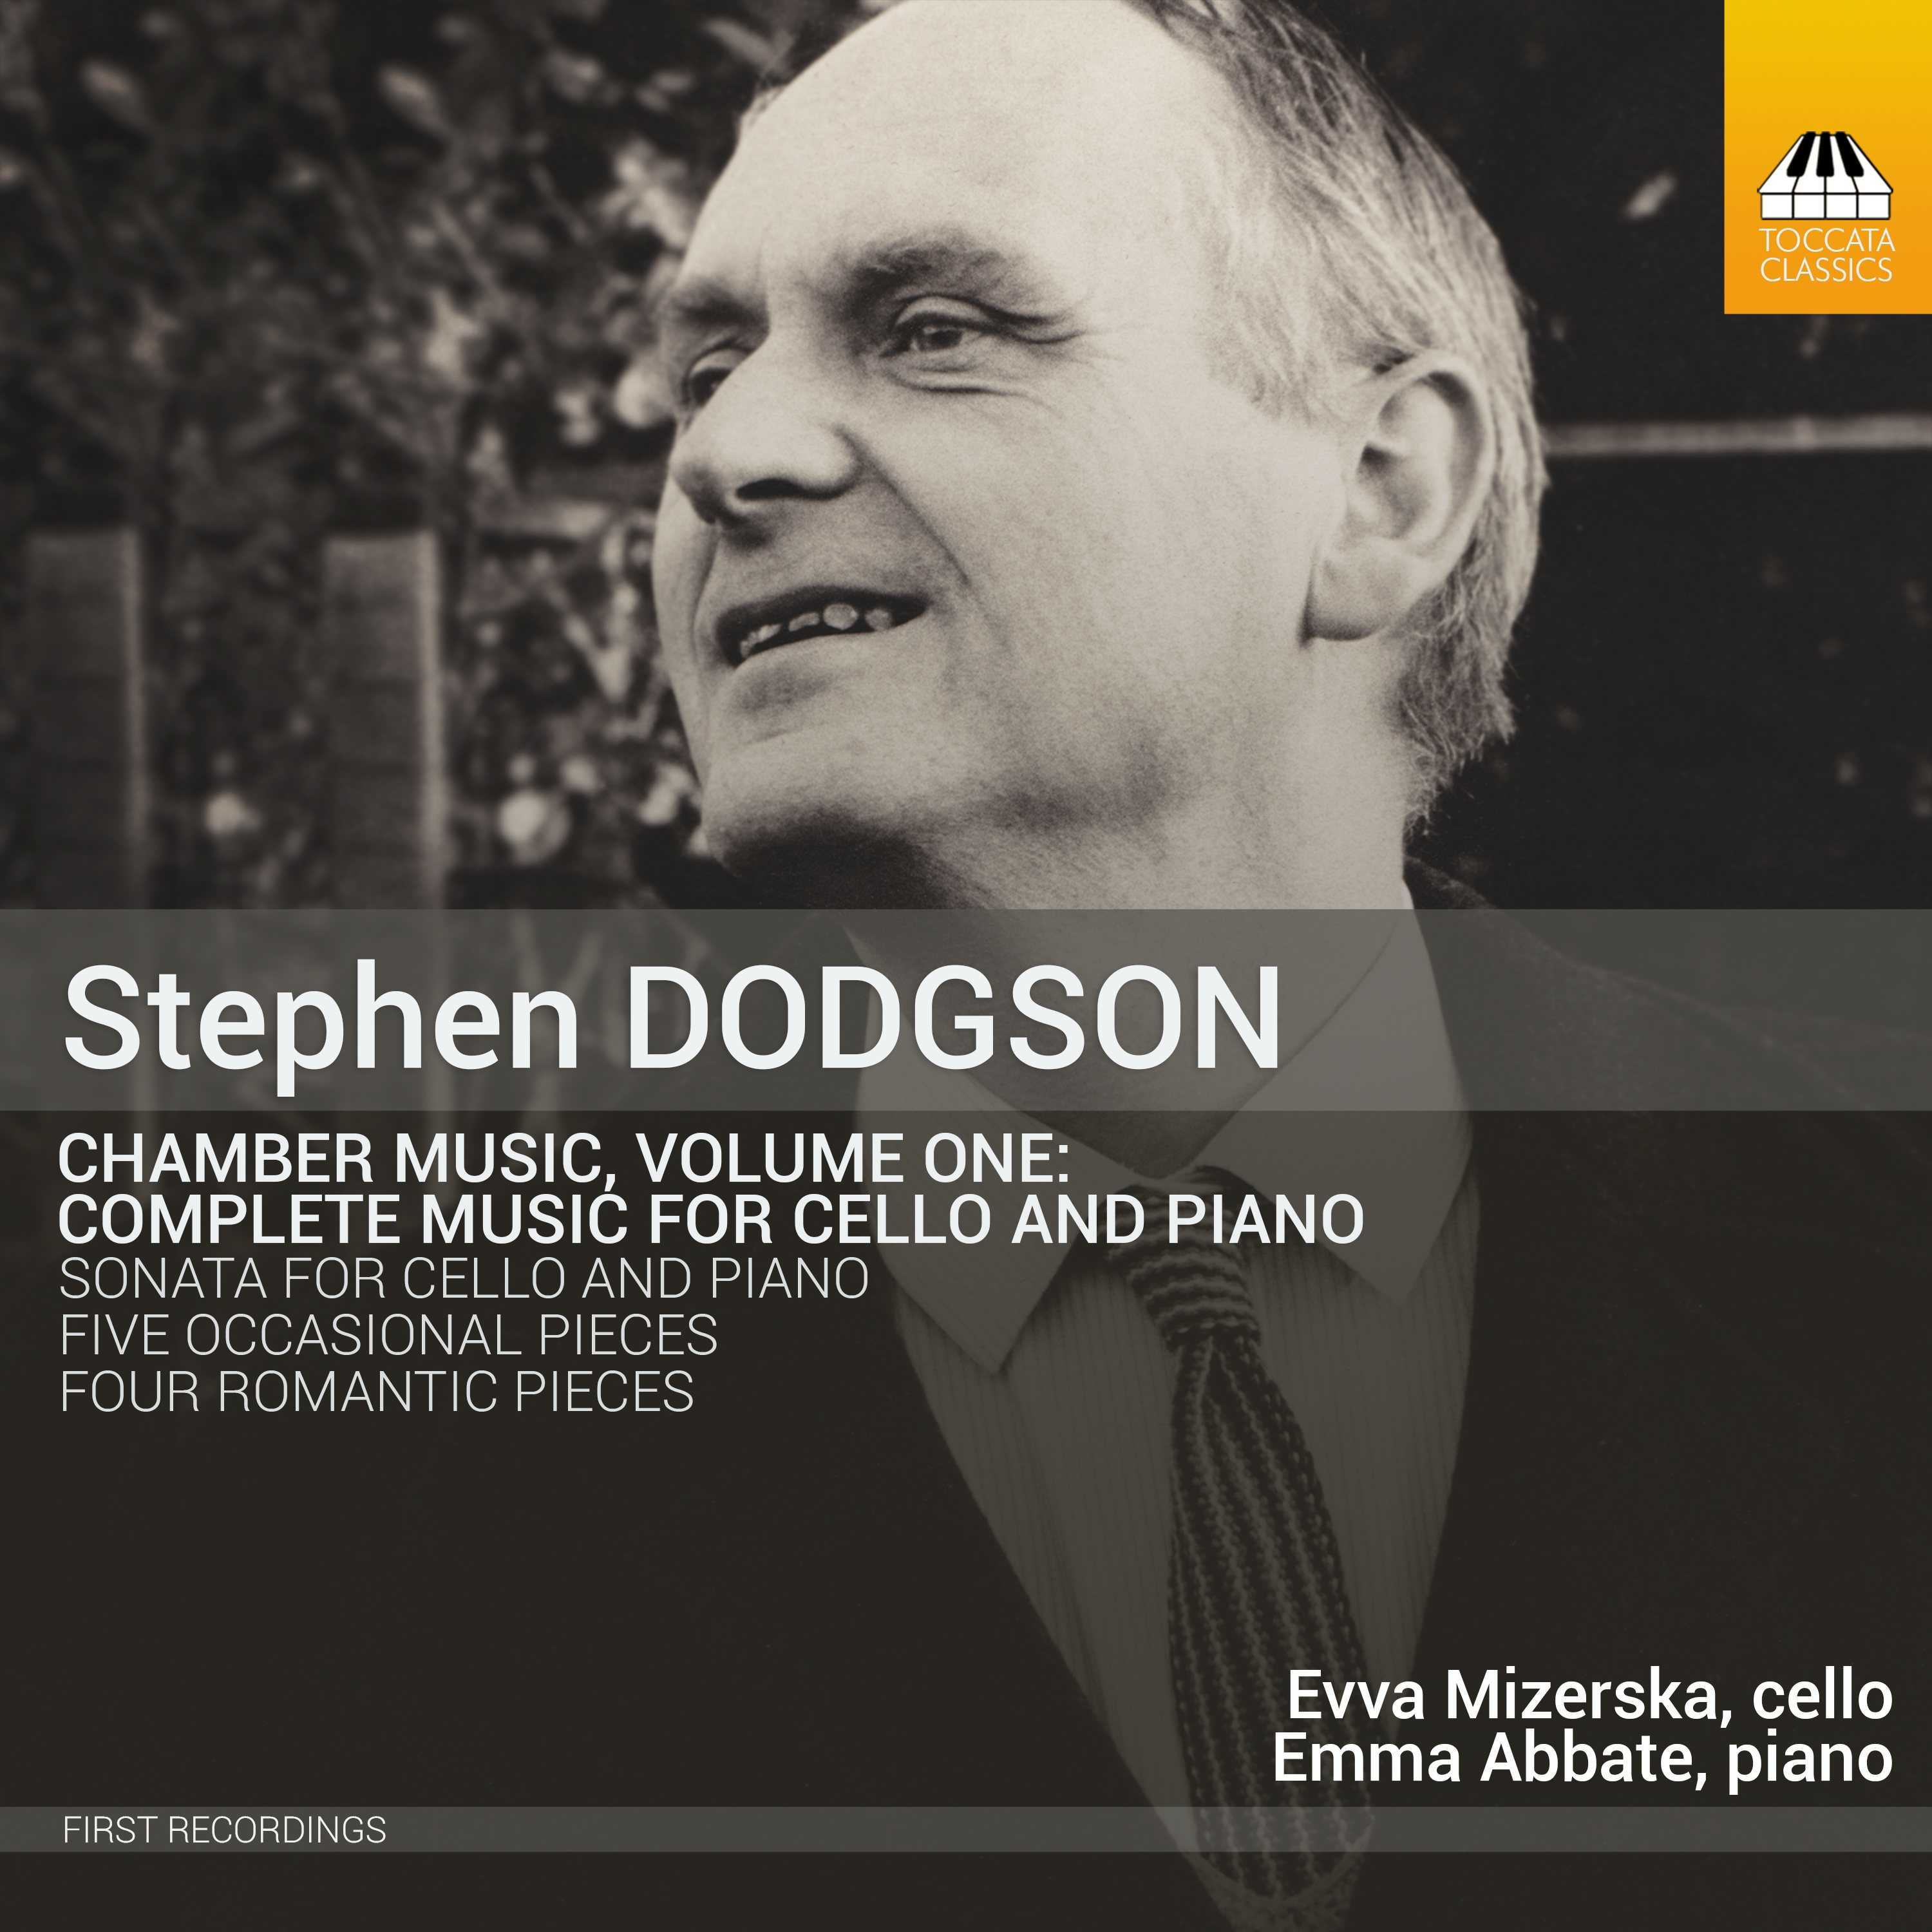 Stephen Dodgson: Chamber Music, Volume One: Complete Music for Cello and Piano